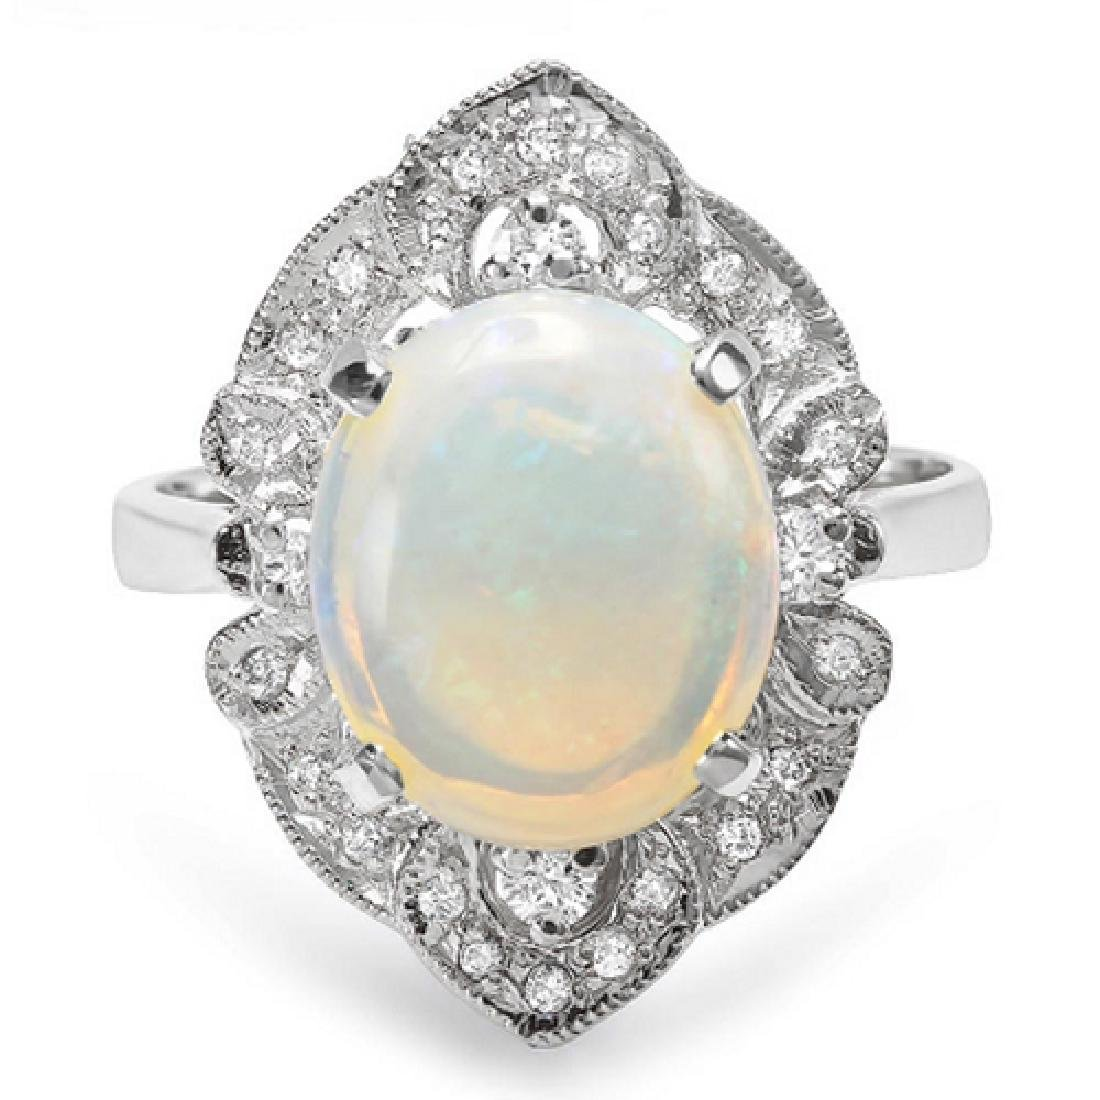 3.15 Carat Natural Opal 18K Solid White Gold Diamond